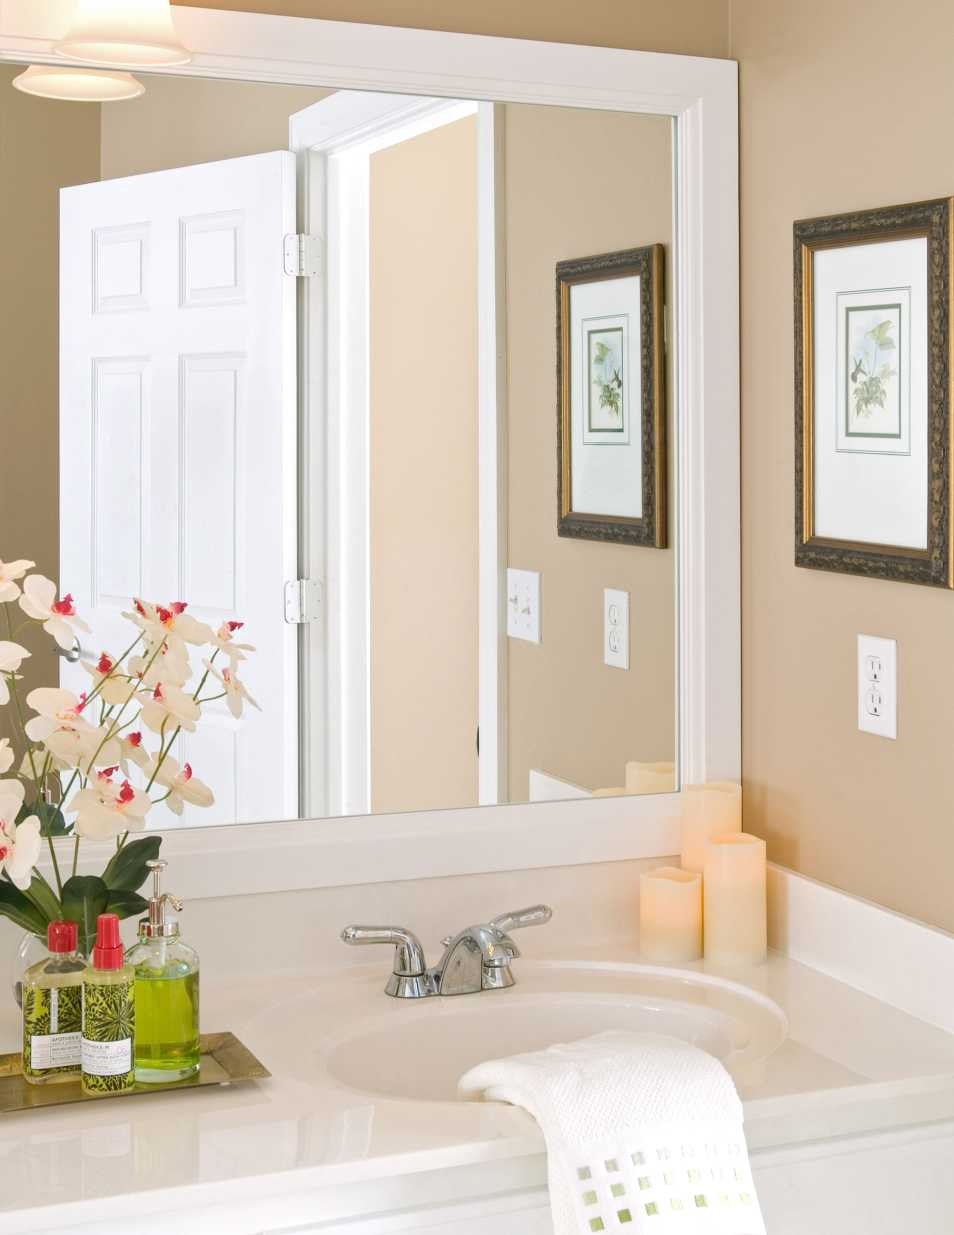 Bathroom mirror frames bathroom mirror mirror frame mirrors dublin Frames for bathroom wall mirrors